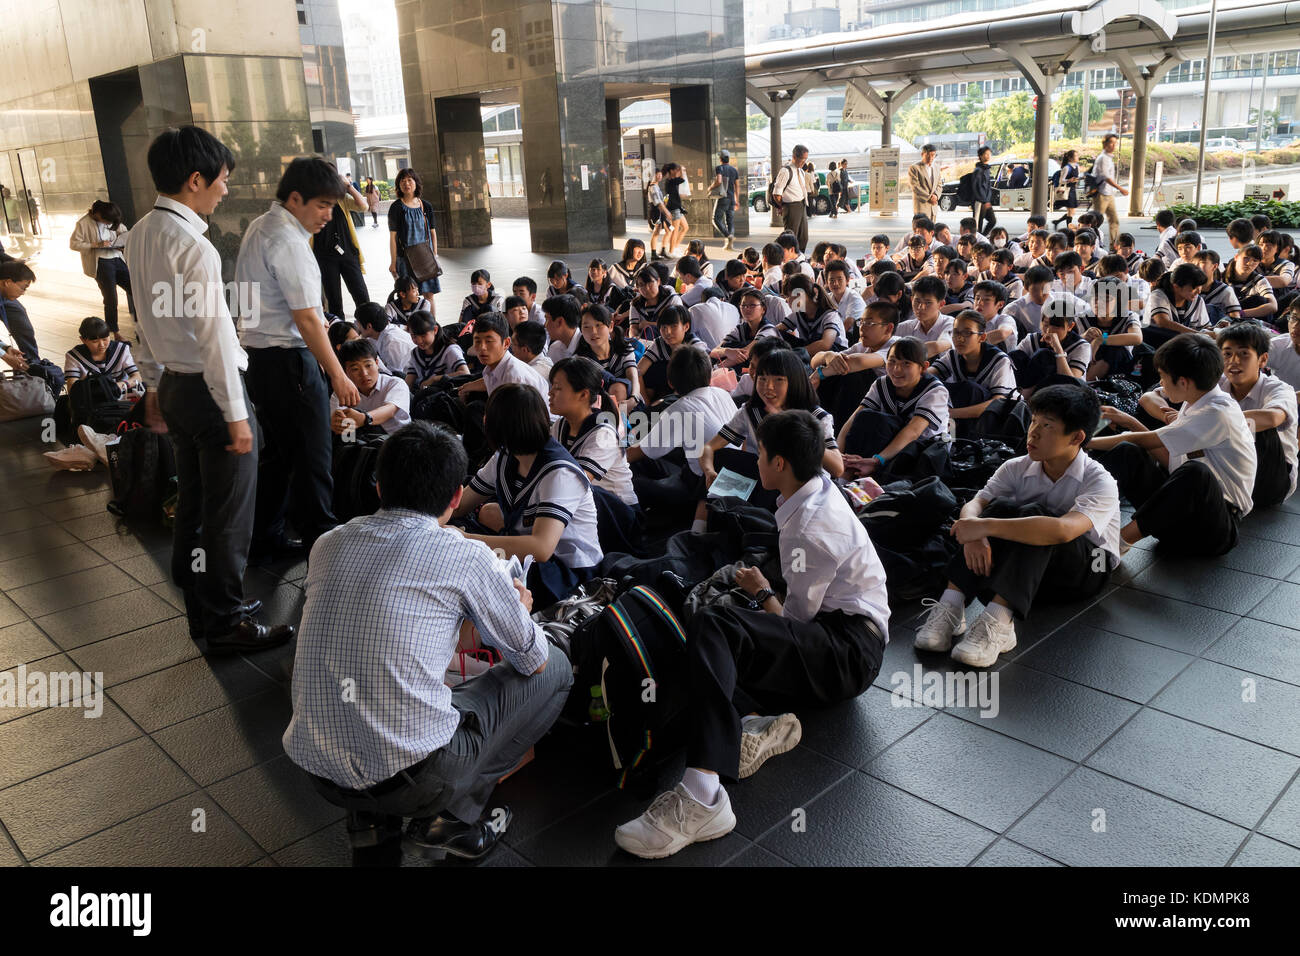 Kyoto, Japan - May 21, 2017: Class of schoolchildren in uniform waiting in the Kyoto station - Stock Image